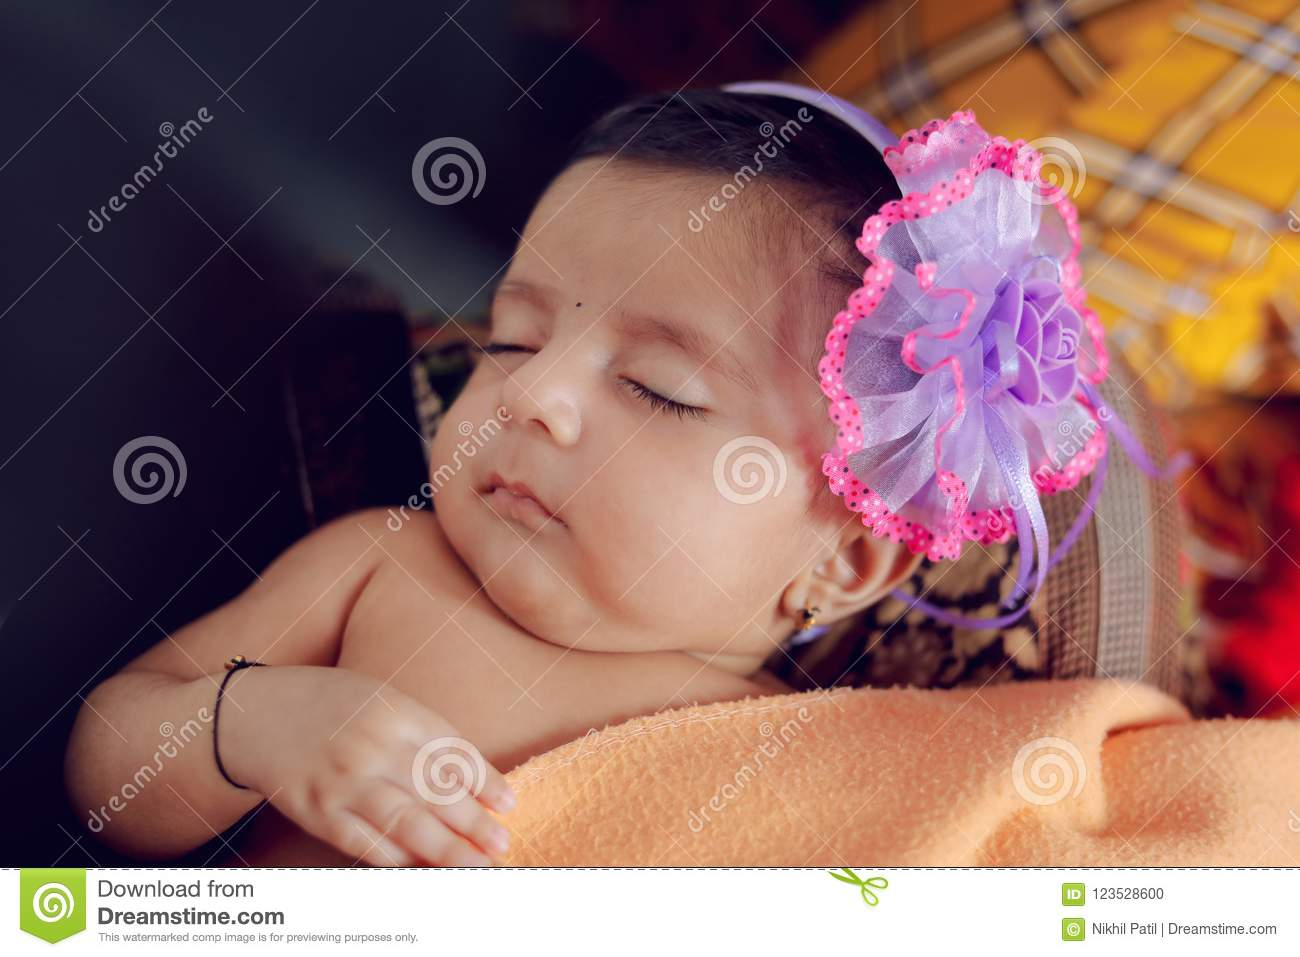 cute indian baby girl sleeping on bed stock photo - image of